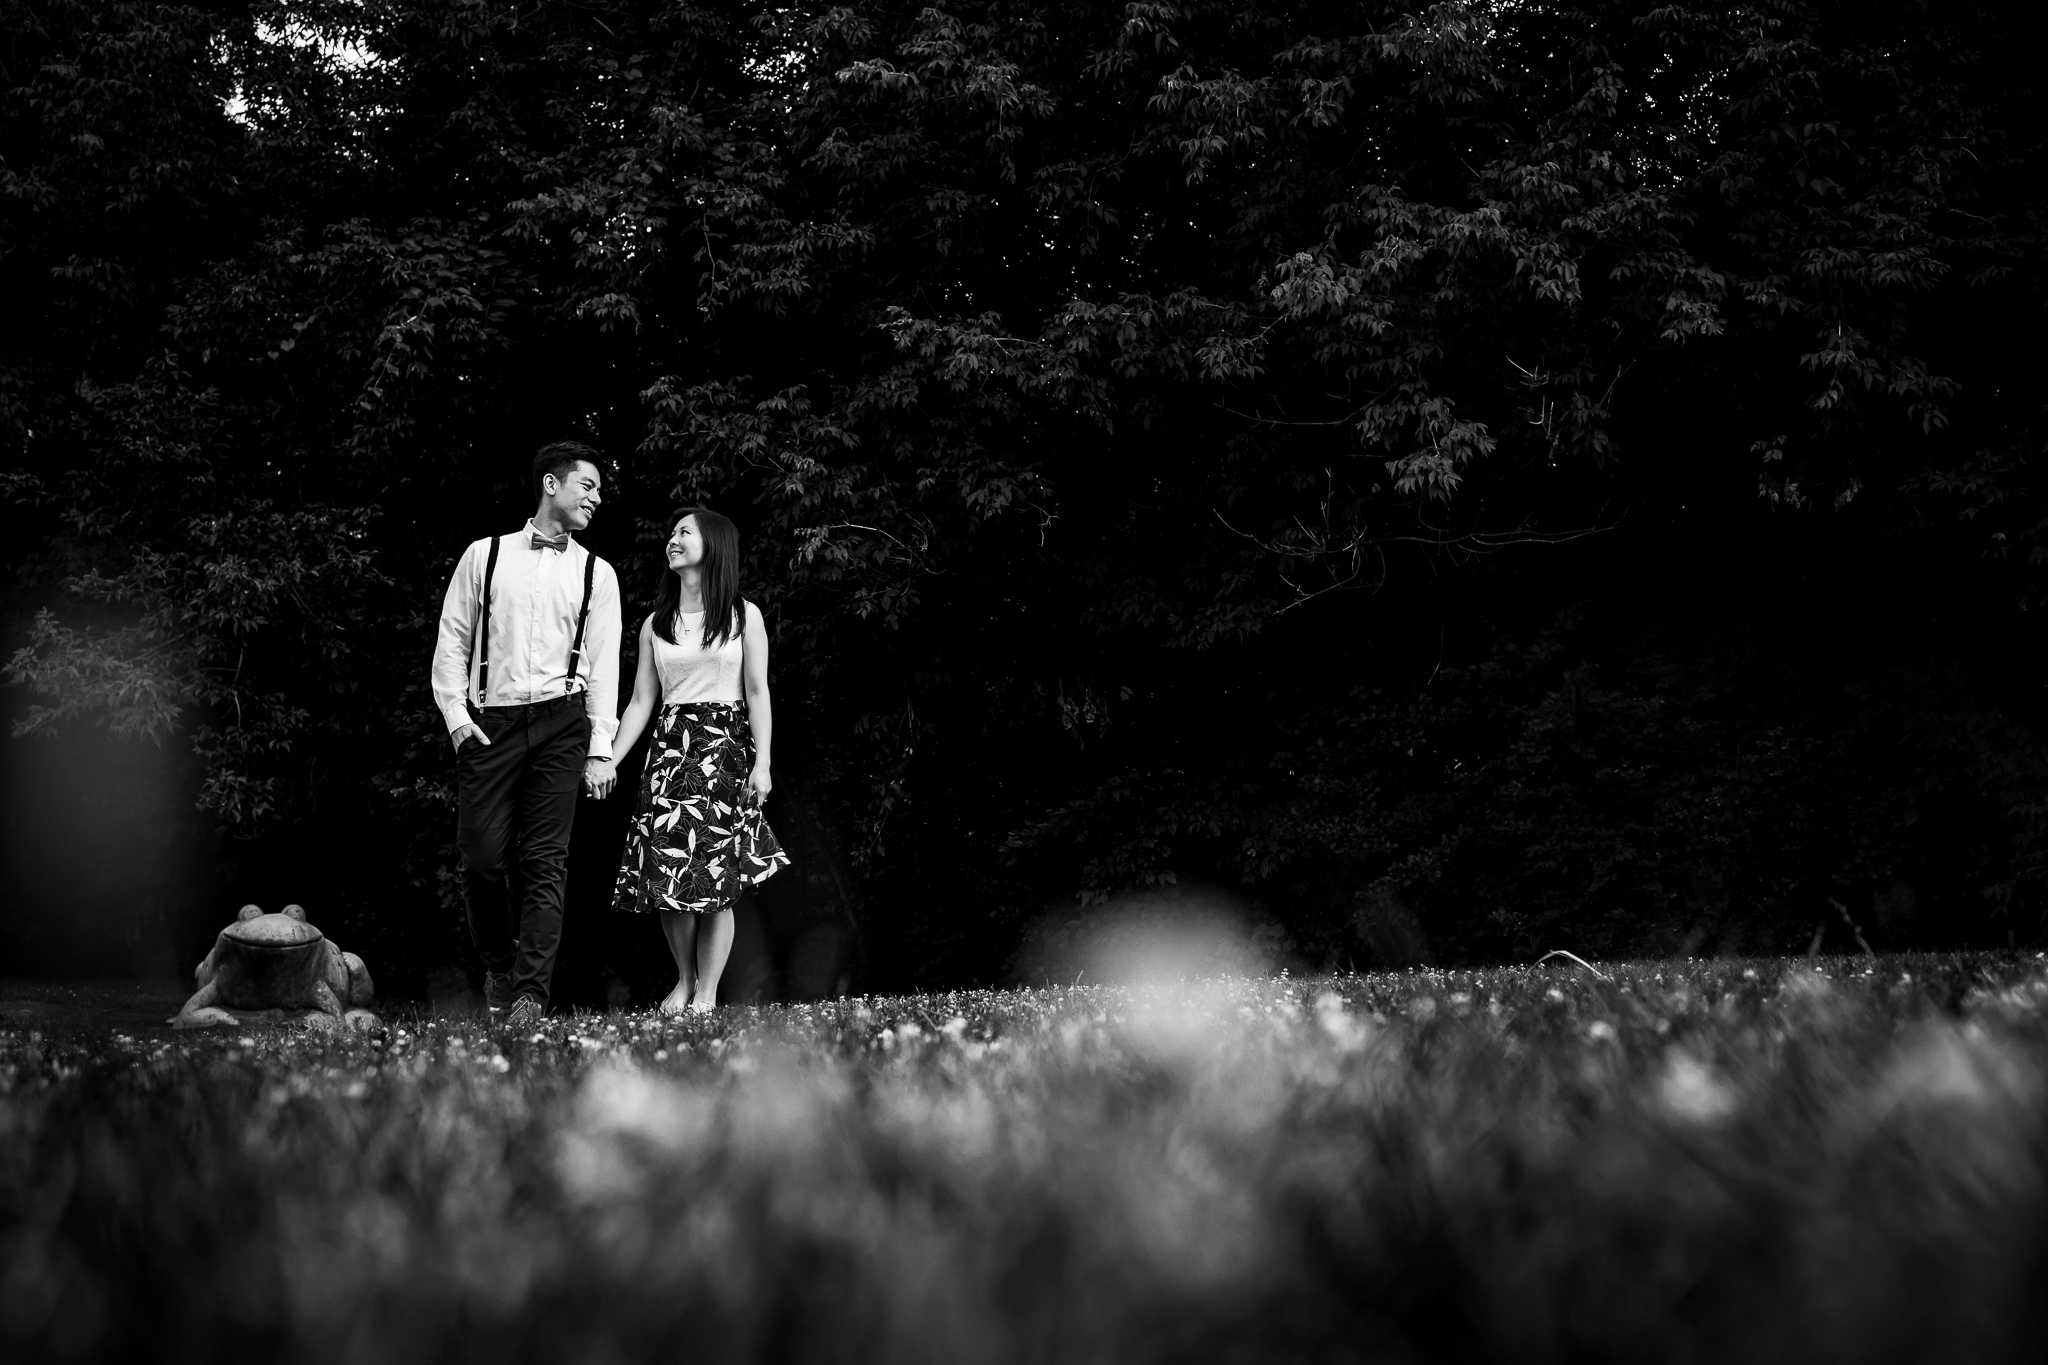 unionville-engagement-photos-15.jpg